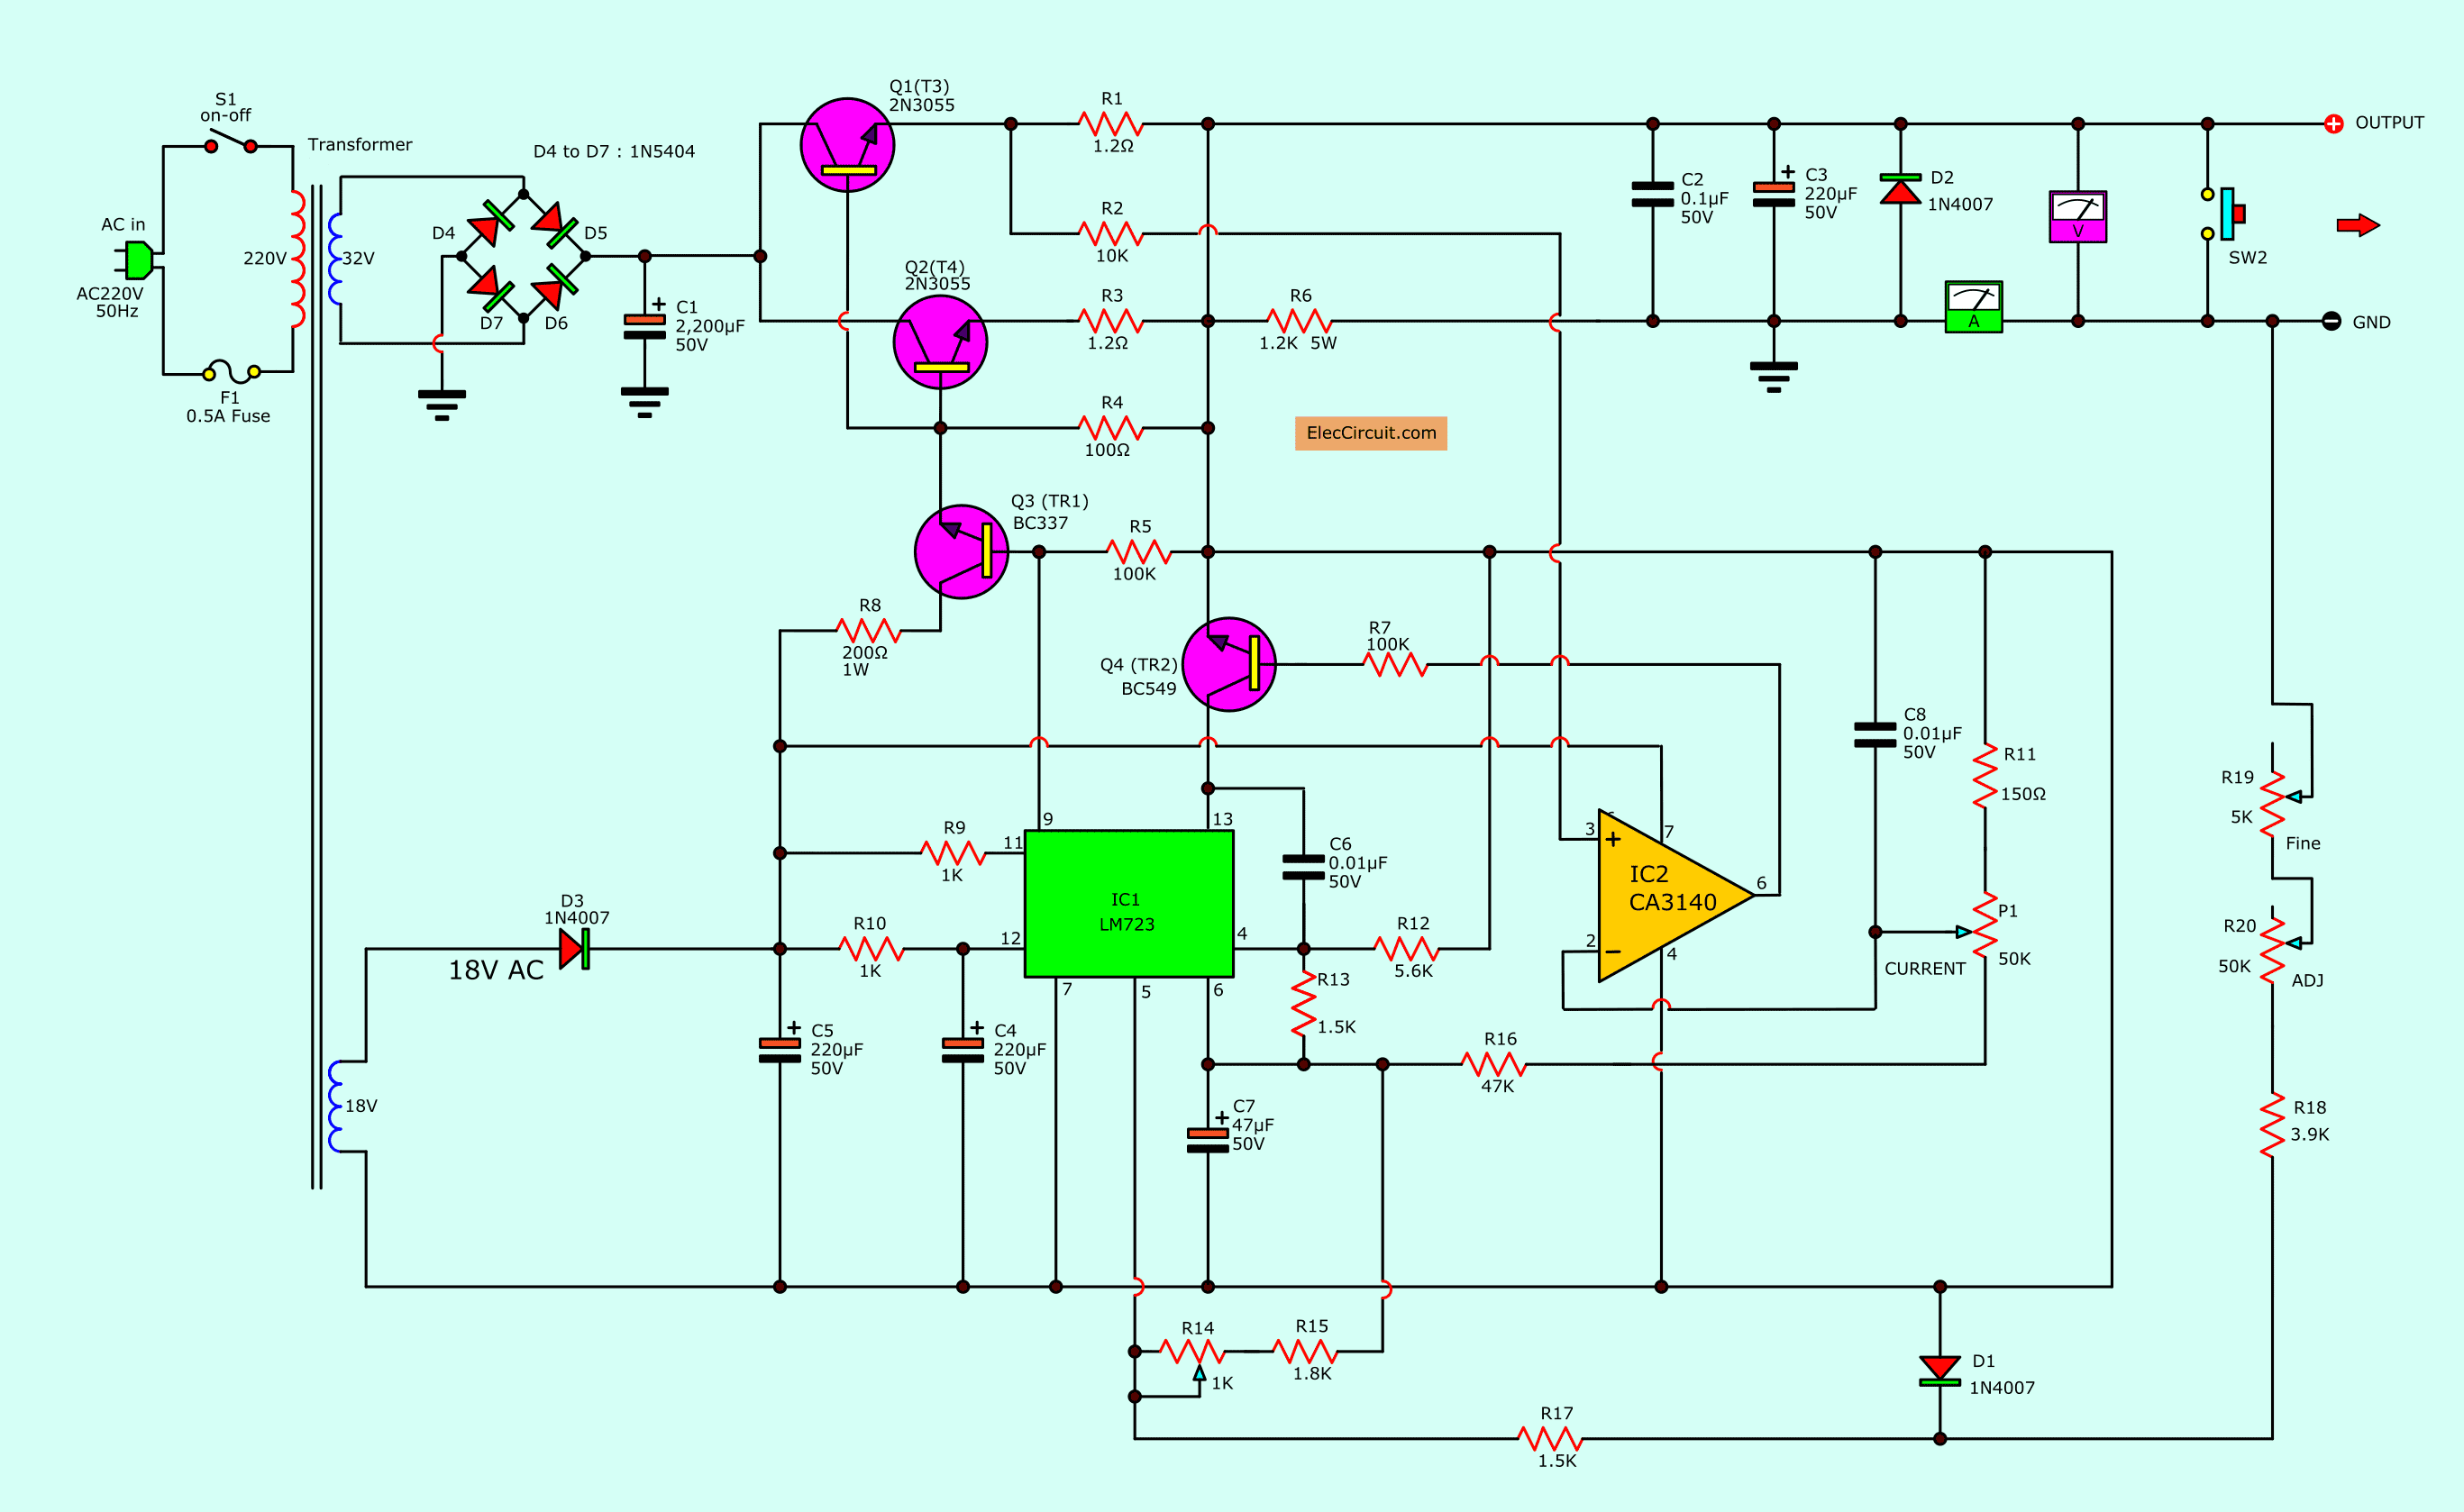 0 30v 0 5a regulated variable power supply circuit eleccircuit com power supply wiring diagram circuit circuit_of_ 0 30v 5a variable benchtop power supply using lm723,ca3140,2n3055